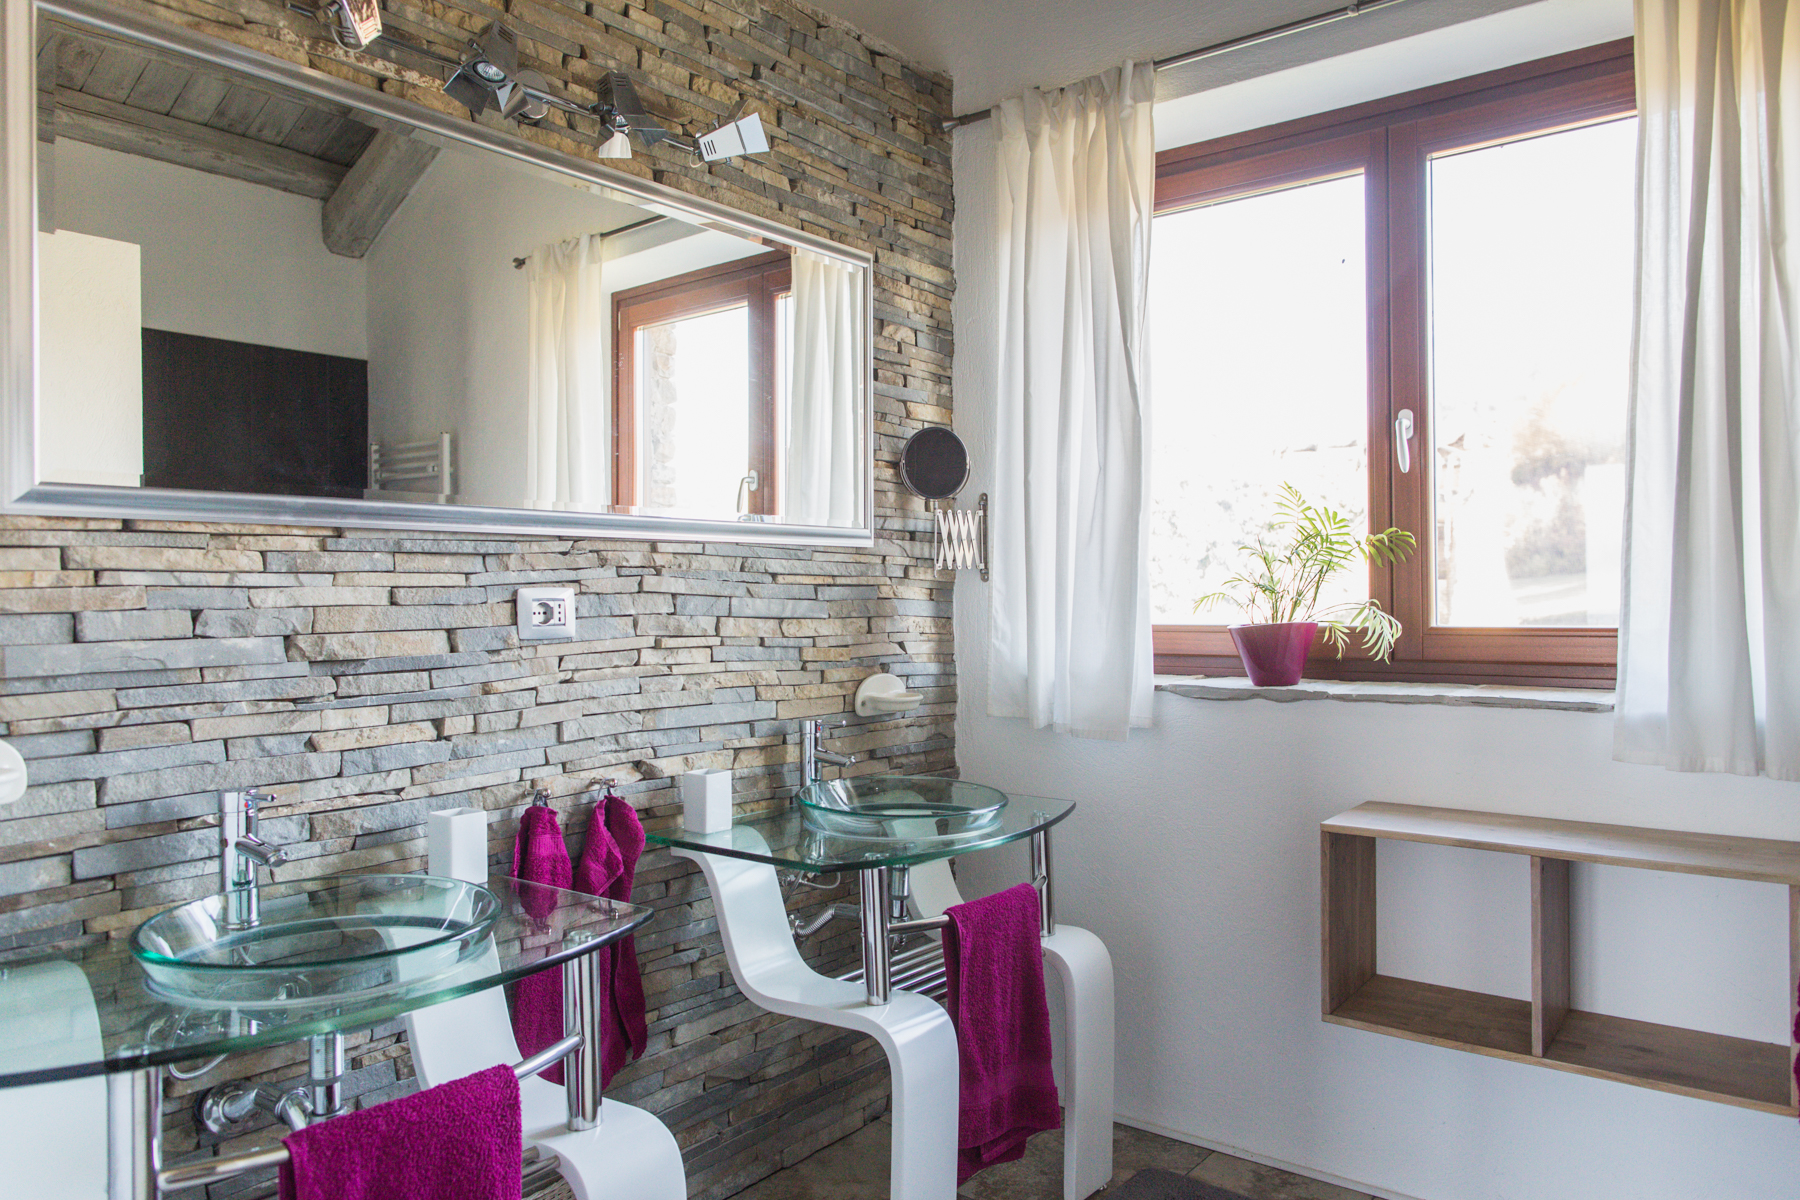 Additional photo for property listing at Cozy Country Home overlooking the Langhe Località Monaca Castellino Tanaro, Cuneo 12060 Italie